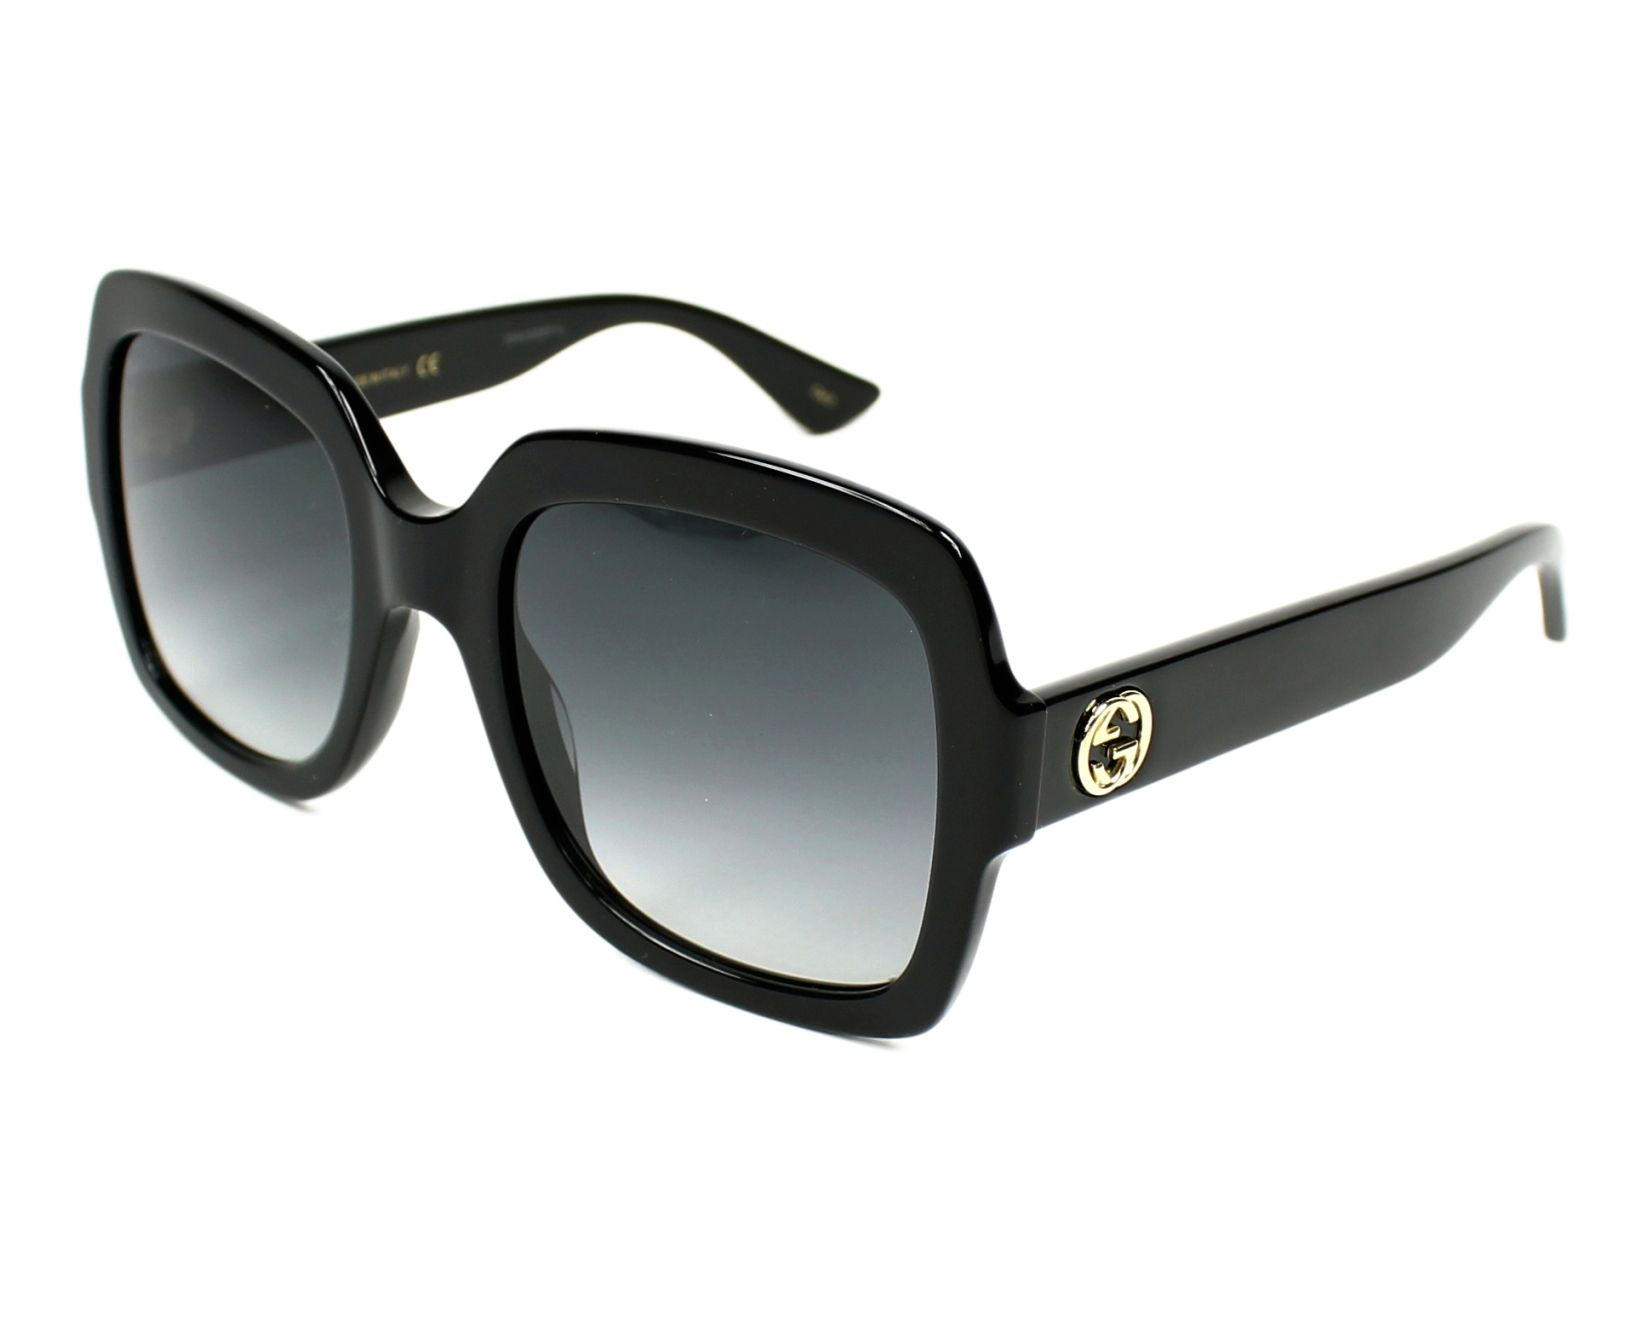 gucci sunglasses. gucci has been added to your cart sunglasses